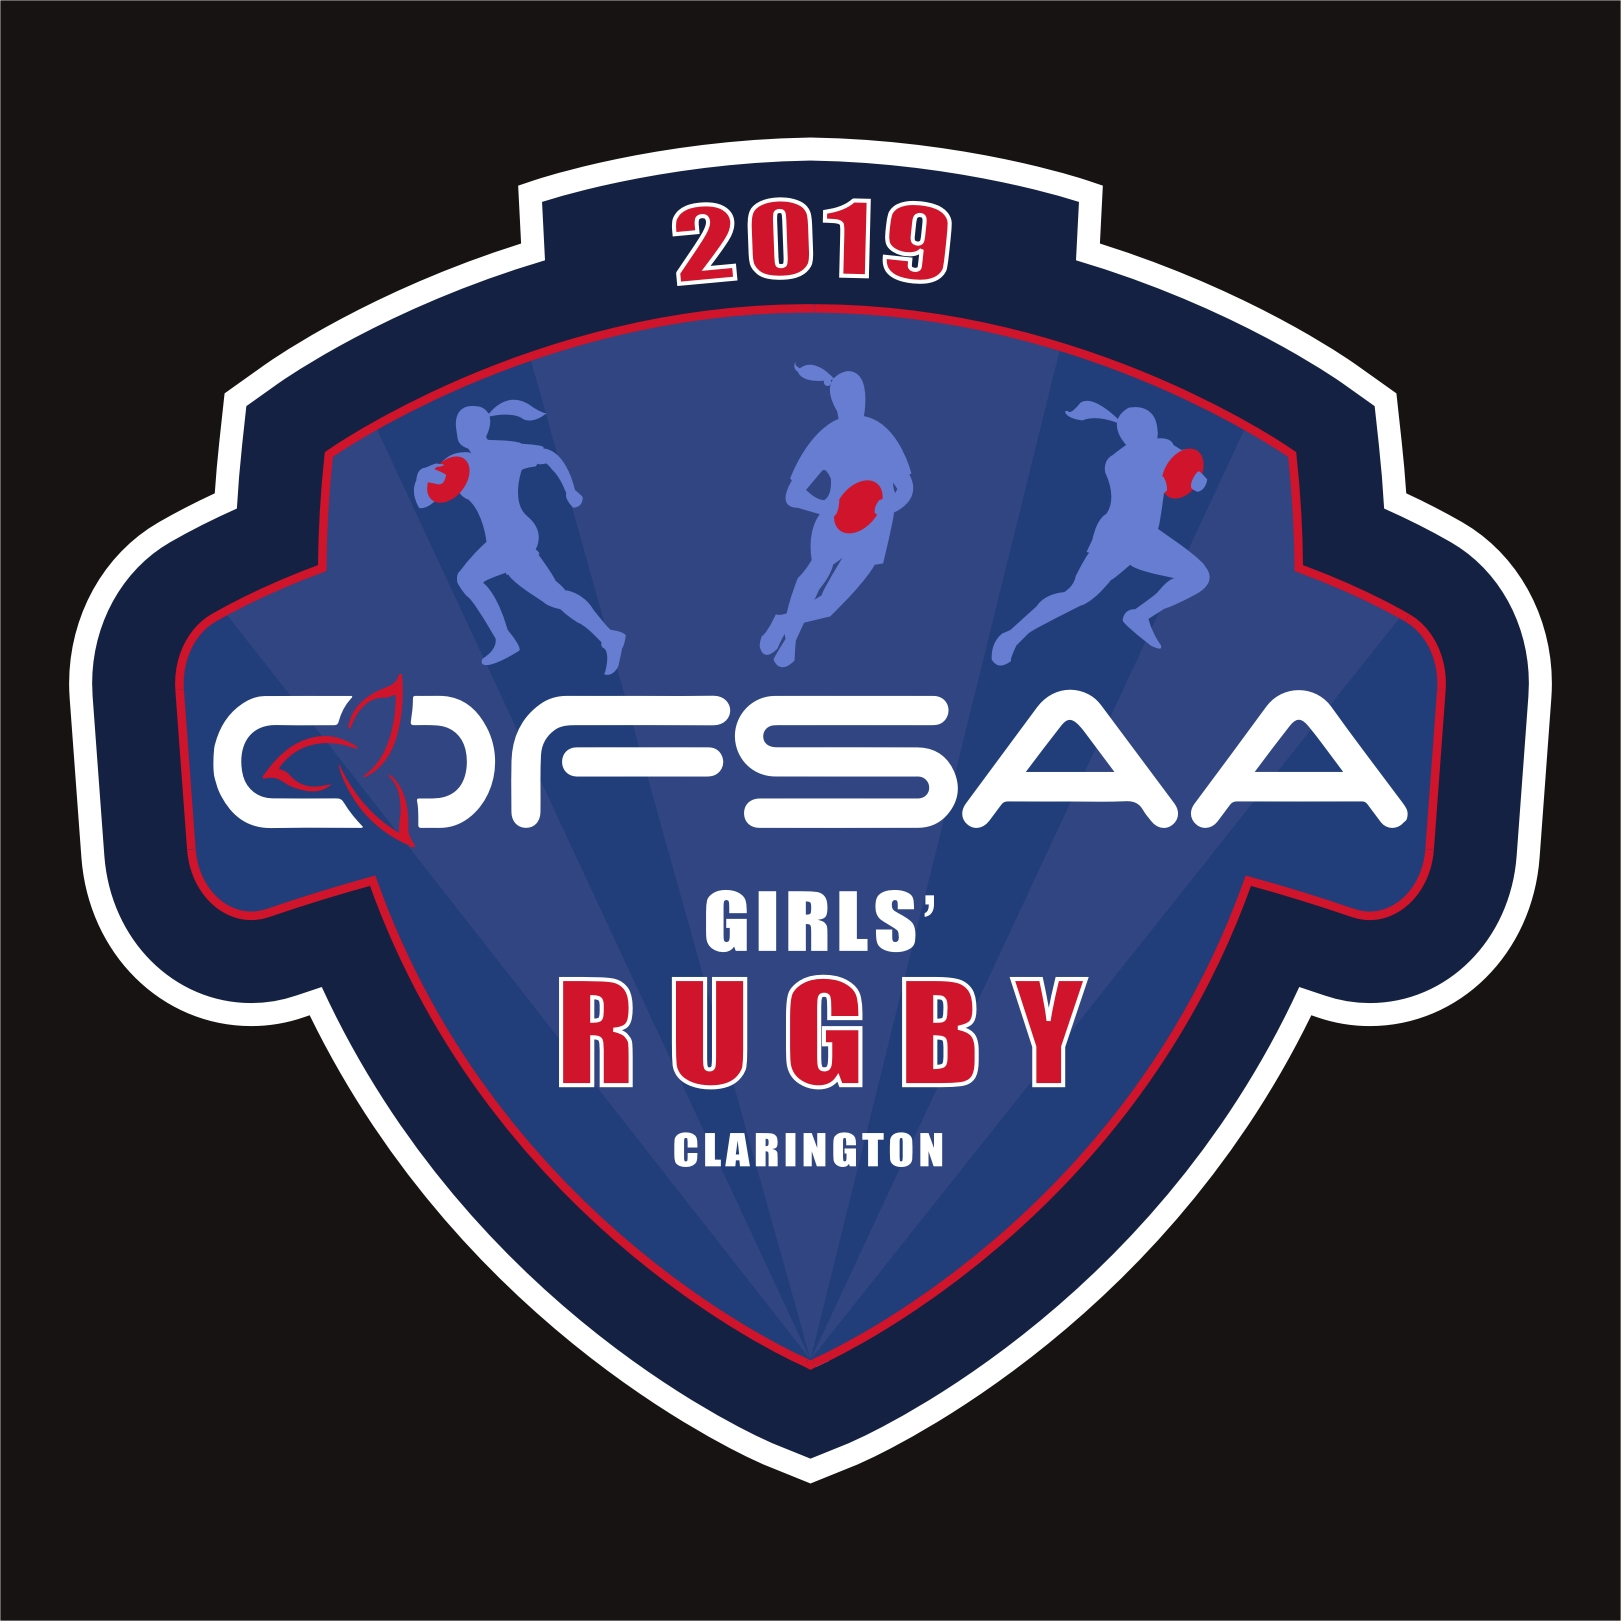 2019 Girls Rugby logo black.jpg